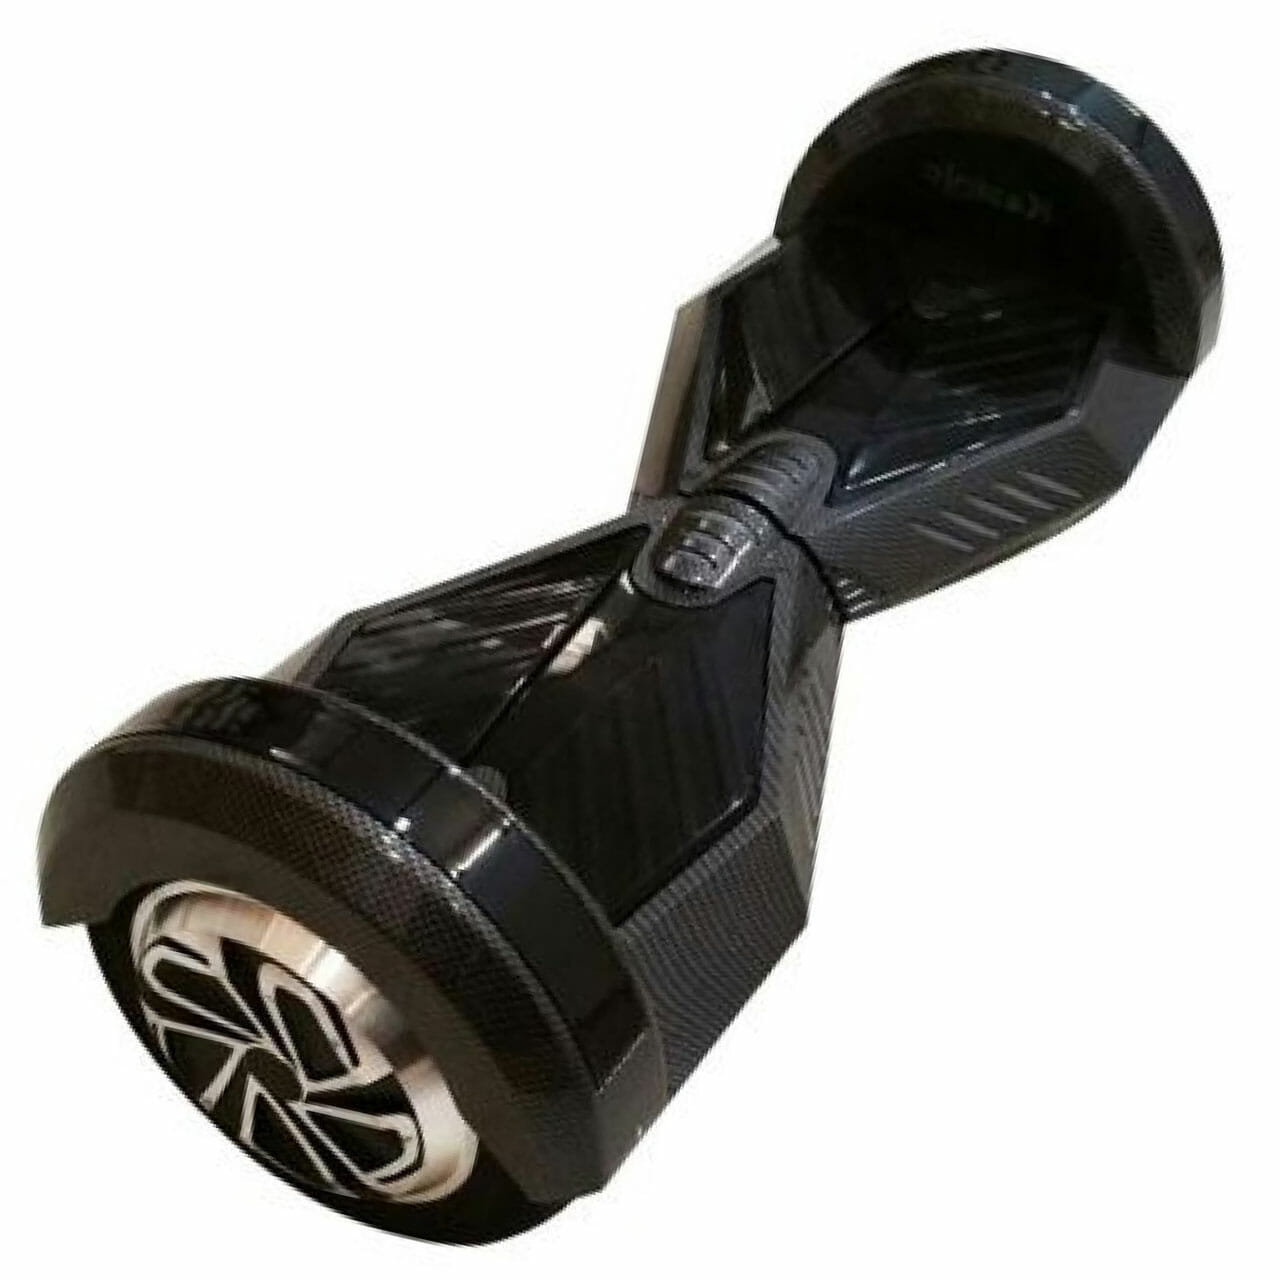 hoverboard black carbon 8 inch hover dream 77 ood. Black Bedroom Furniture Sets. Home Design Ideas